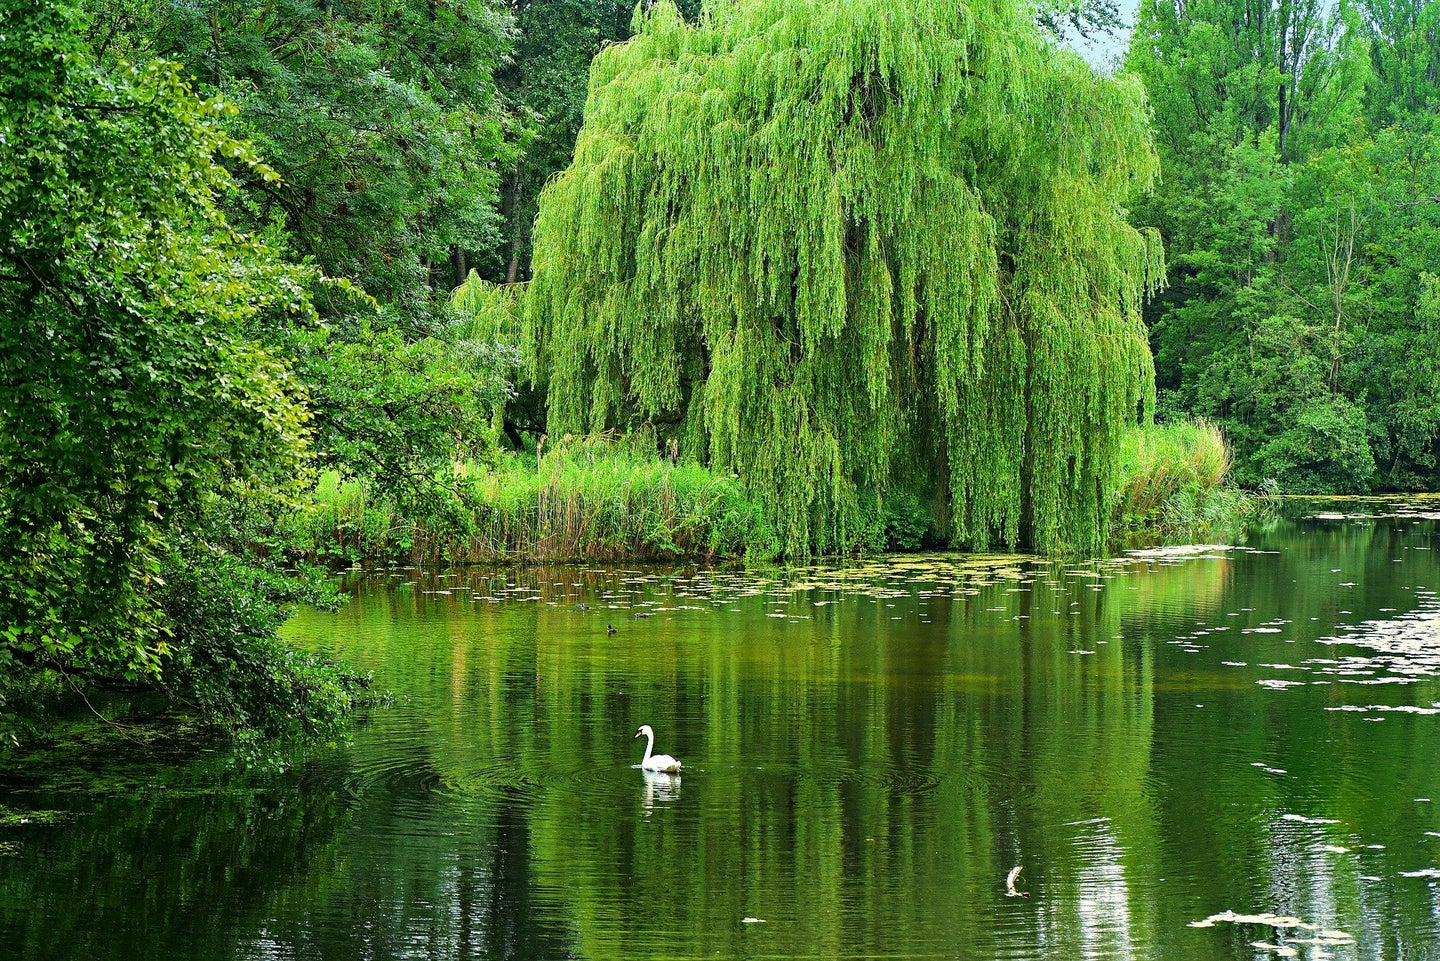 Willow trees could be a sustainable (and beautiful) way to treat wastewater